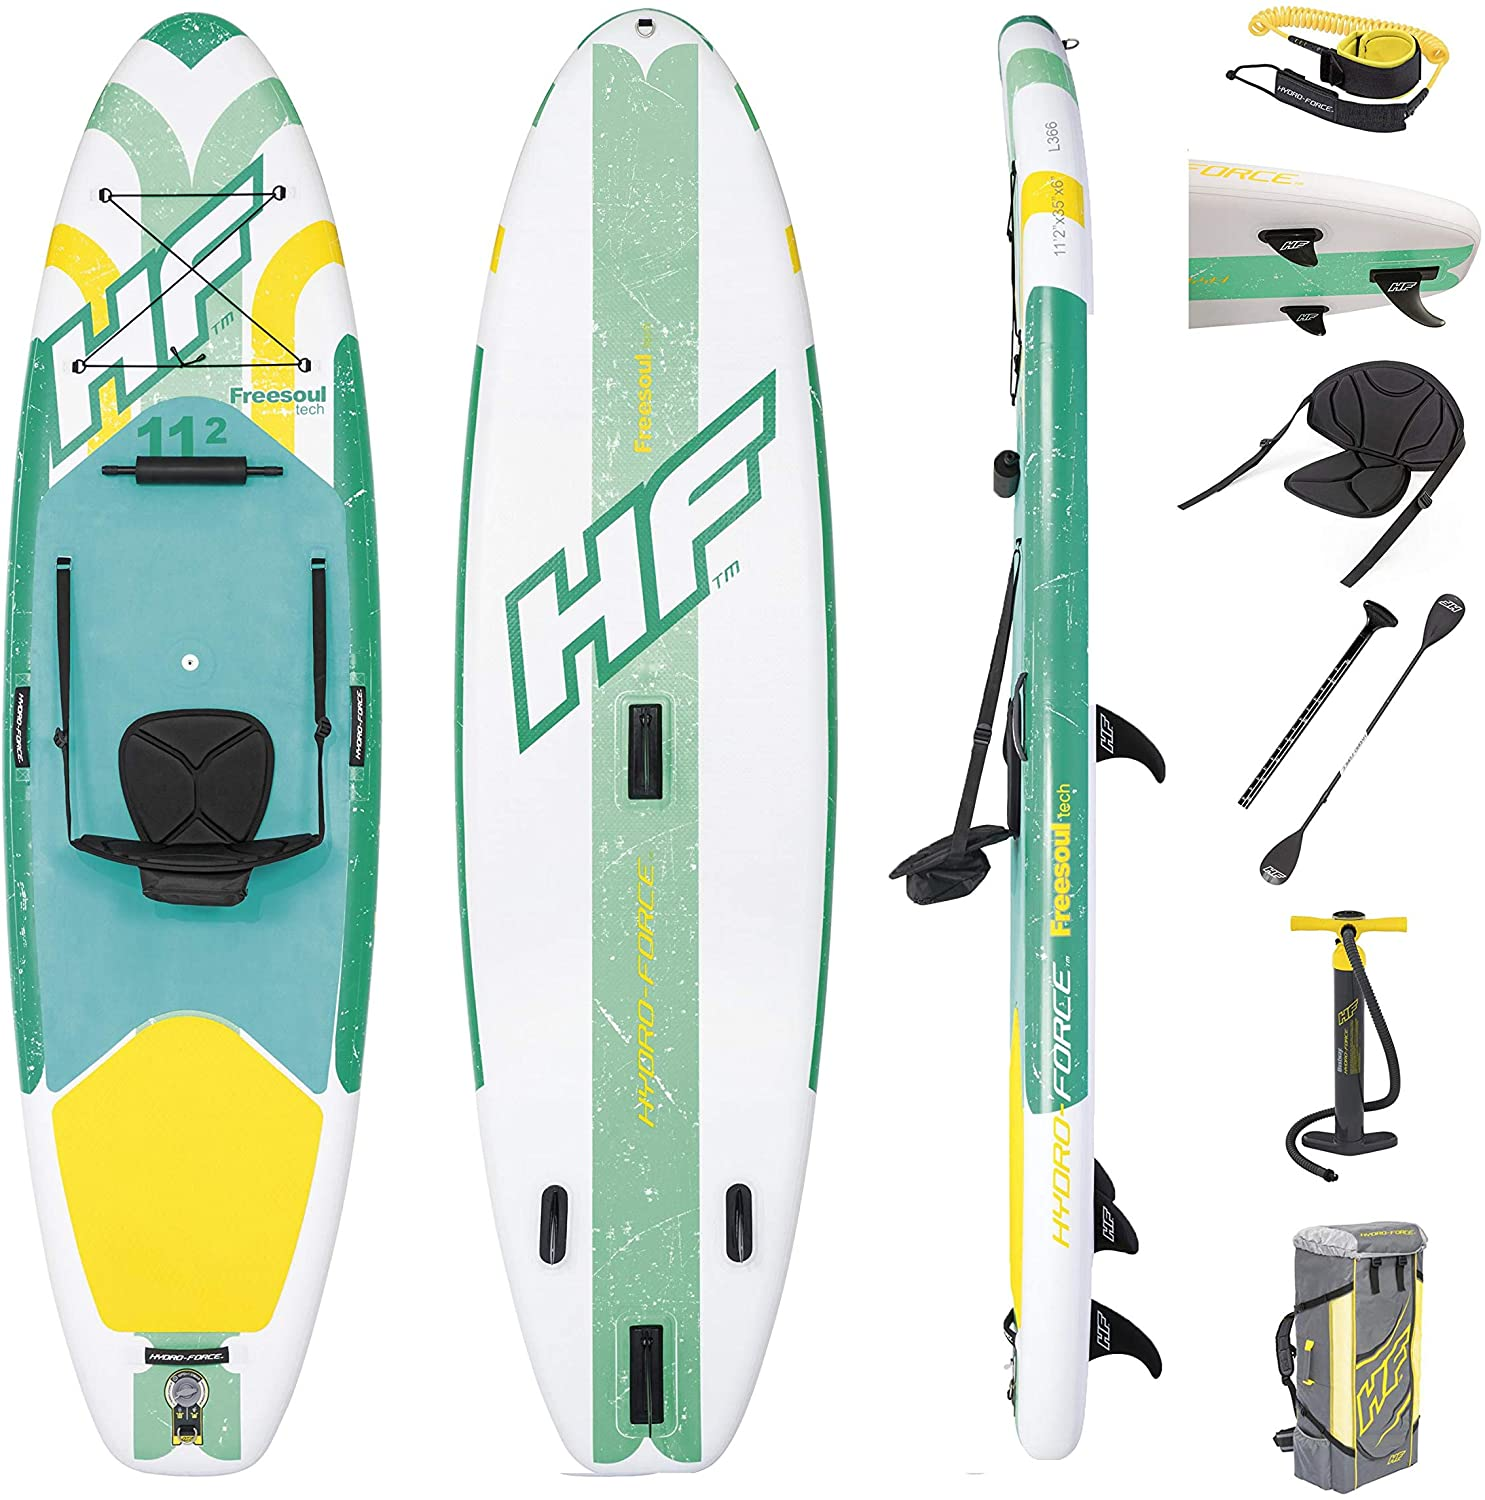 Bestway Hydro-Force Freesoul Tech Inflatable SUP